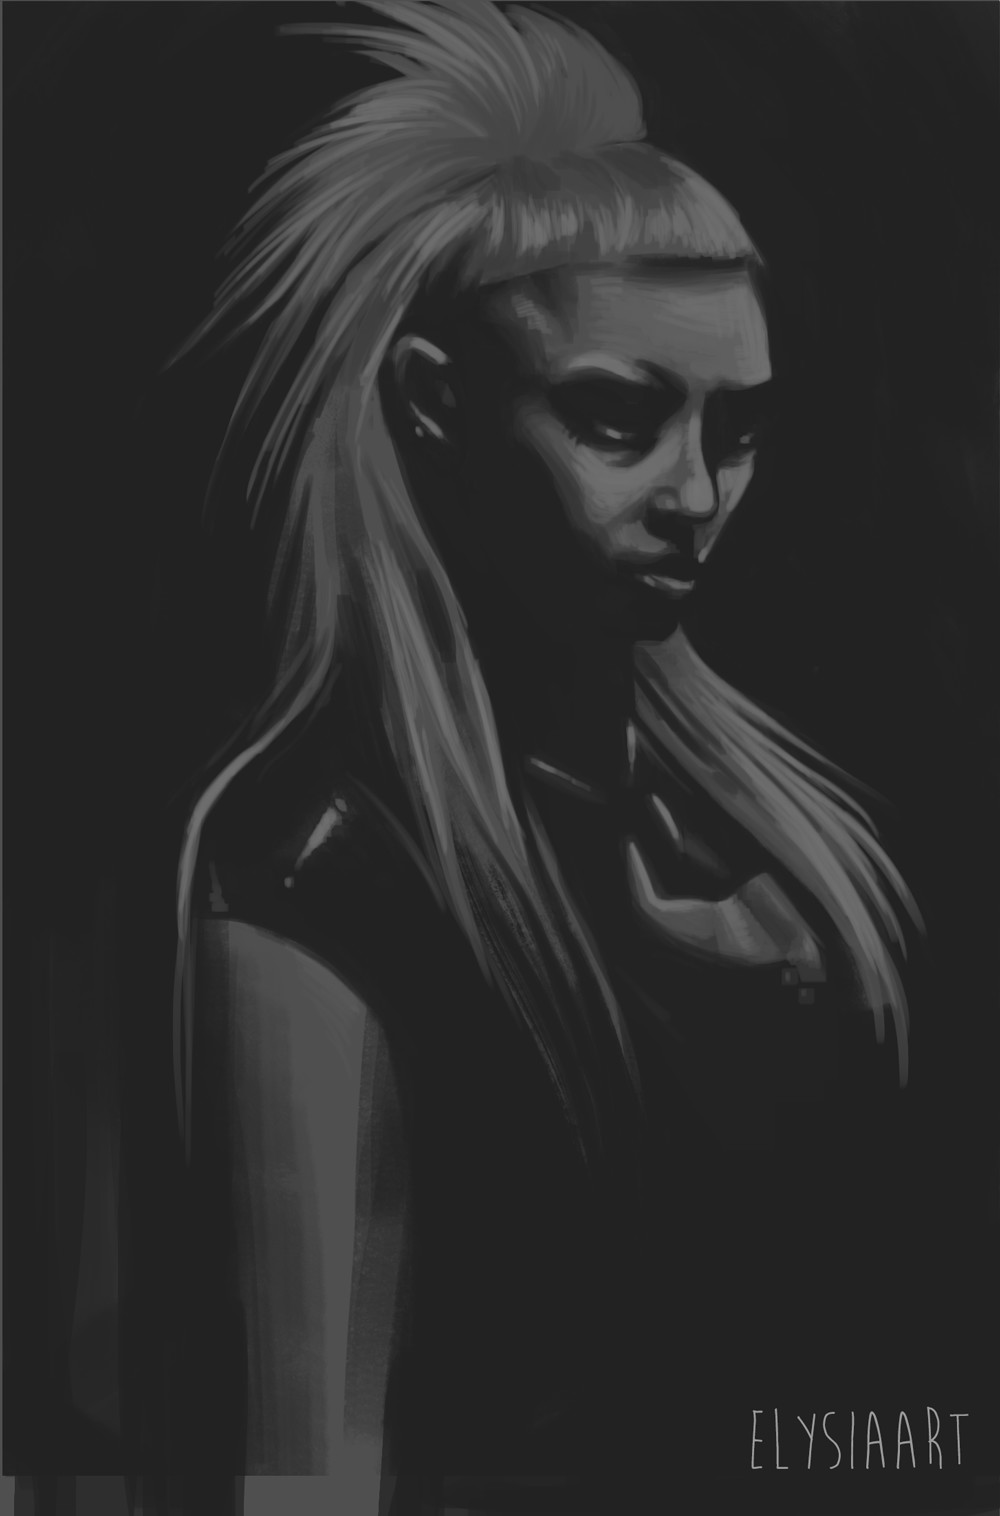 Value study from photograph of Yolandi Visser.